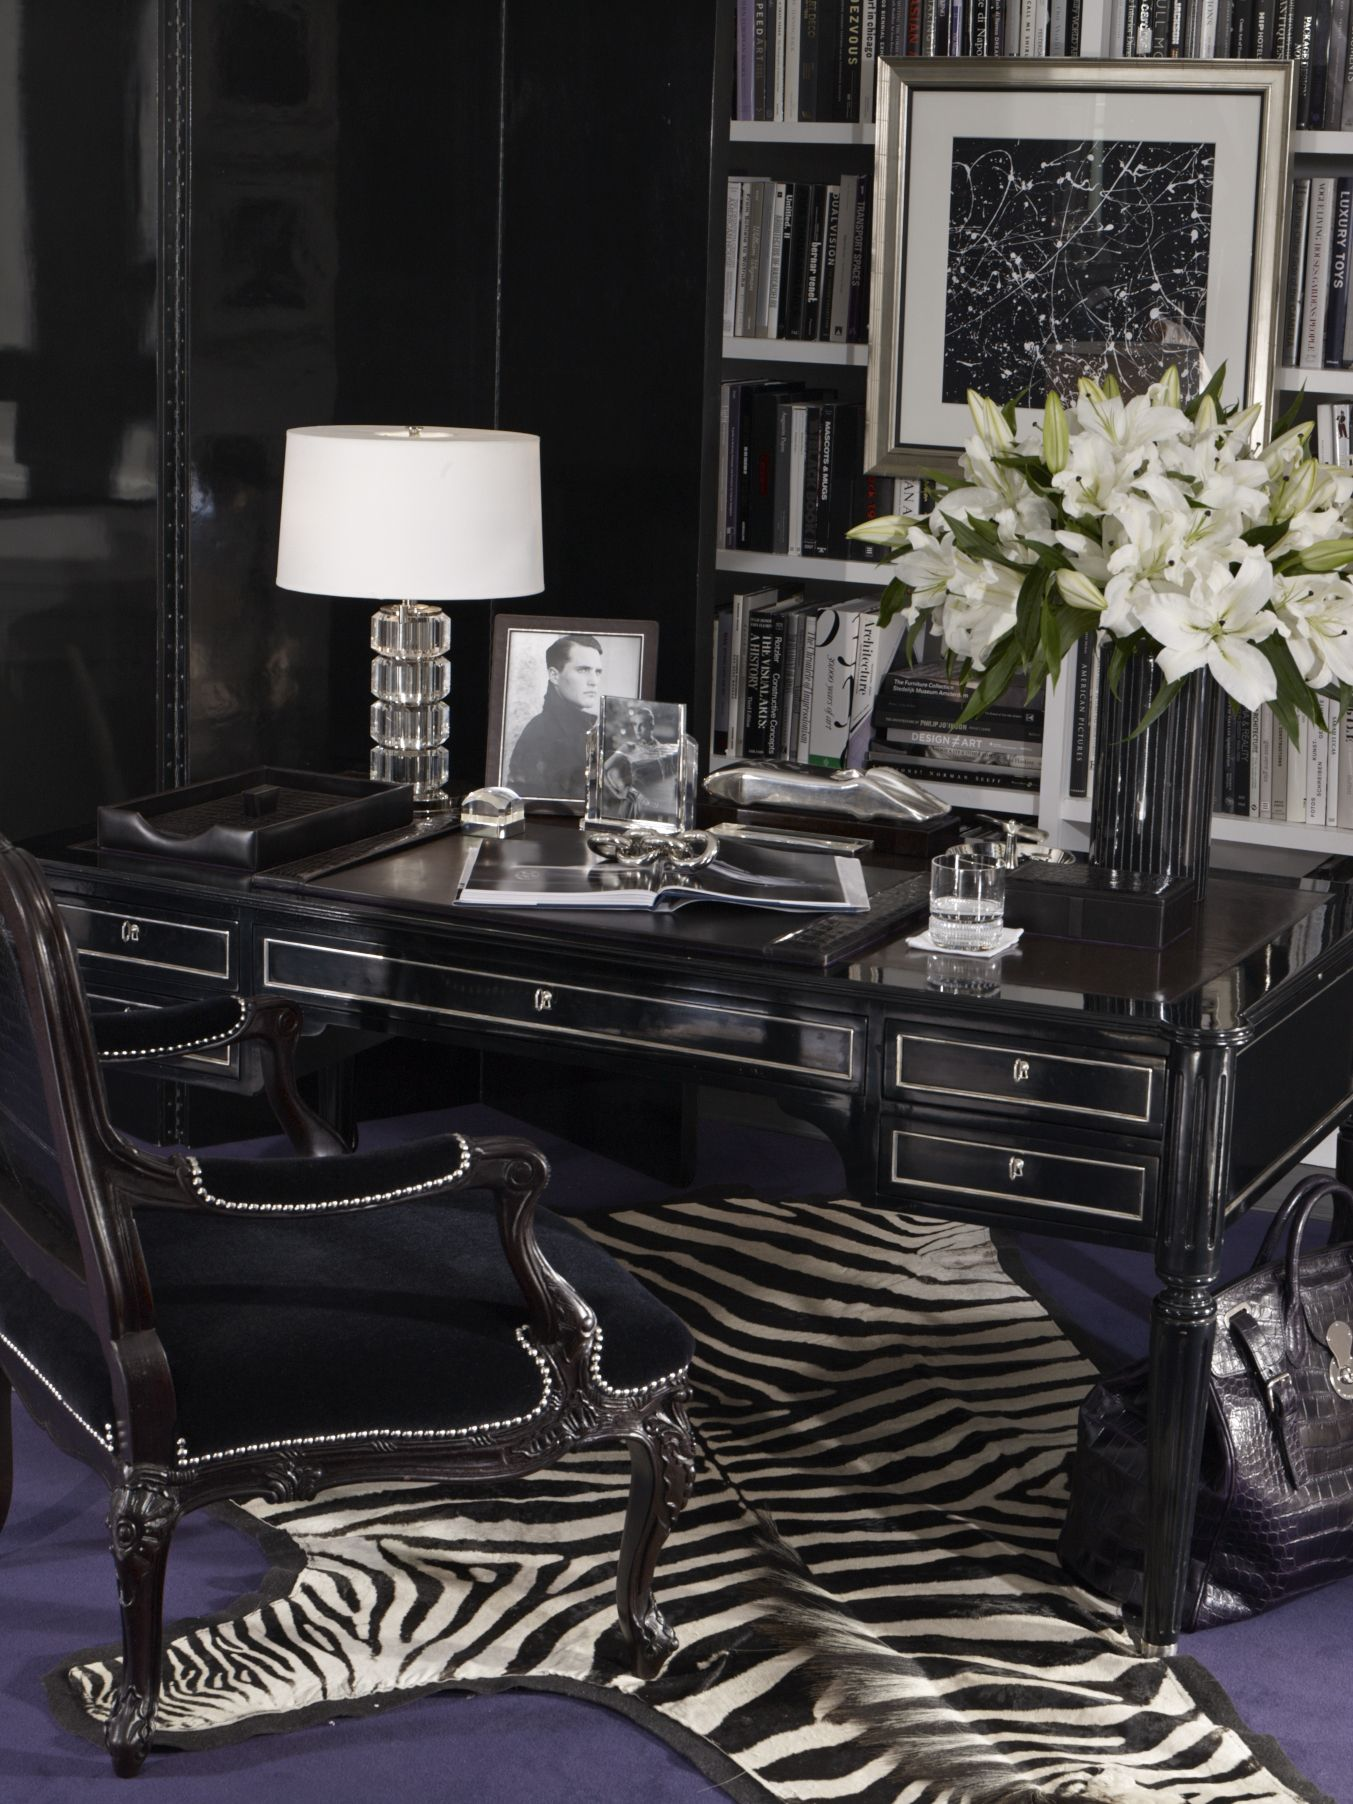 A Sharp Home Office From Ralph Lauren Home A Collection Of Masculine Desk Accessories Arranged On Our Brook Home Office Design Luxury Office Home Office Decor